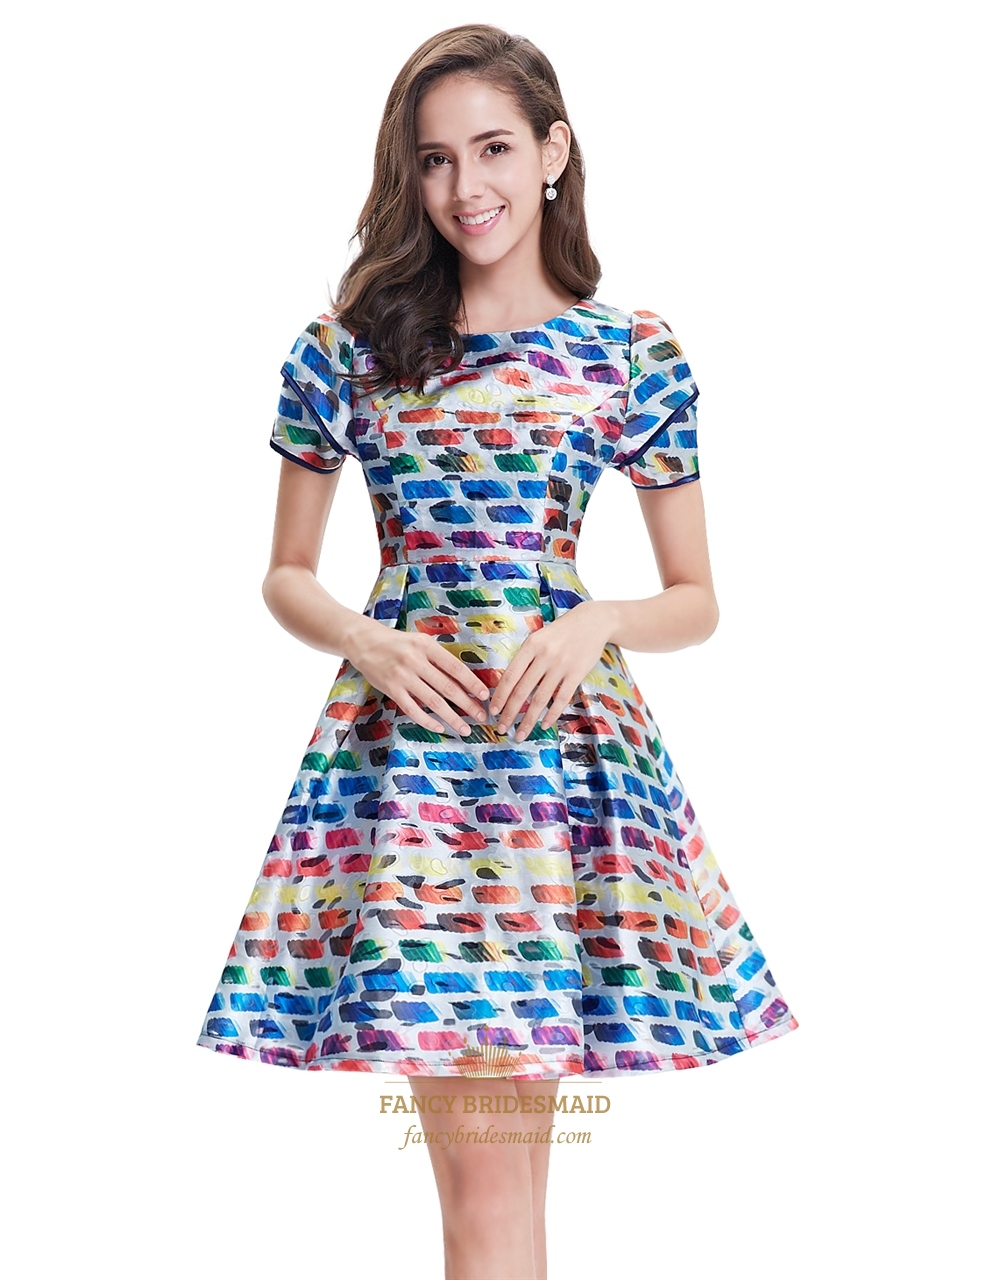 Cheap Dresses, Buy Directly from China Suppliers:Women Fit and Flare Party Dress Vintage Dot Print Summer Casual Dress Summer O-Neck Short Sleeve Fold Elegant Mid Dresses Enjoy Free Shipping Worldwide! Limited Time Sale Easy Return/5().